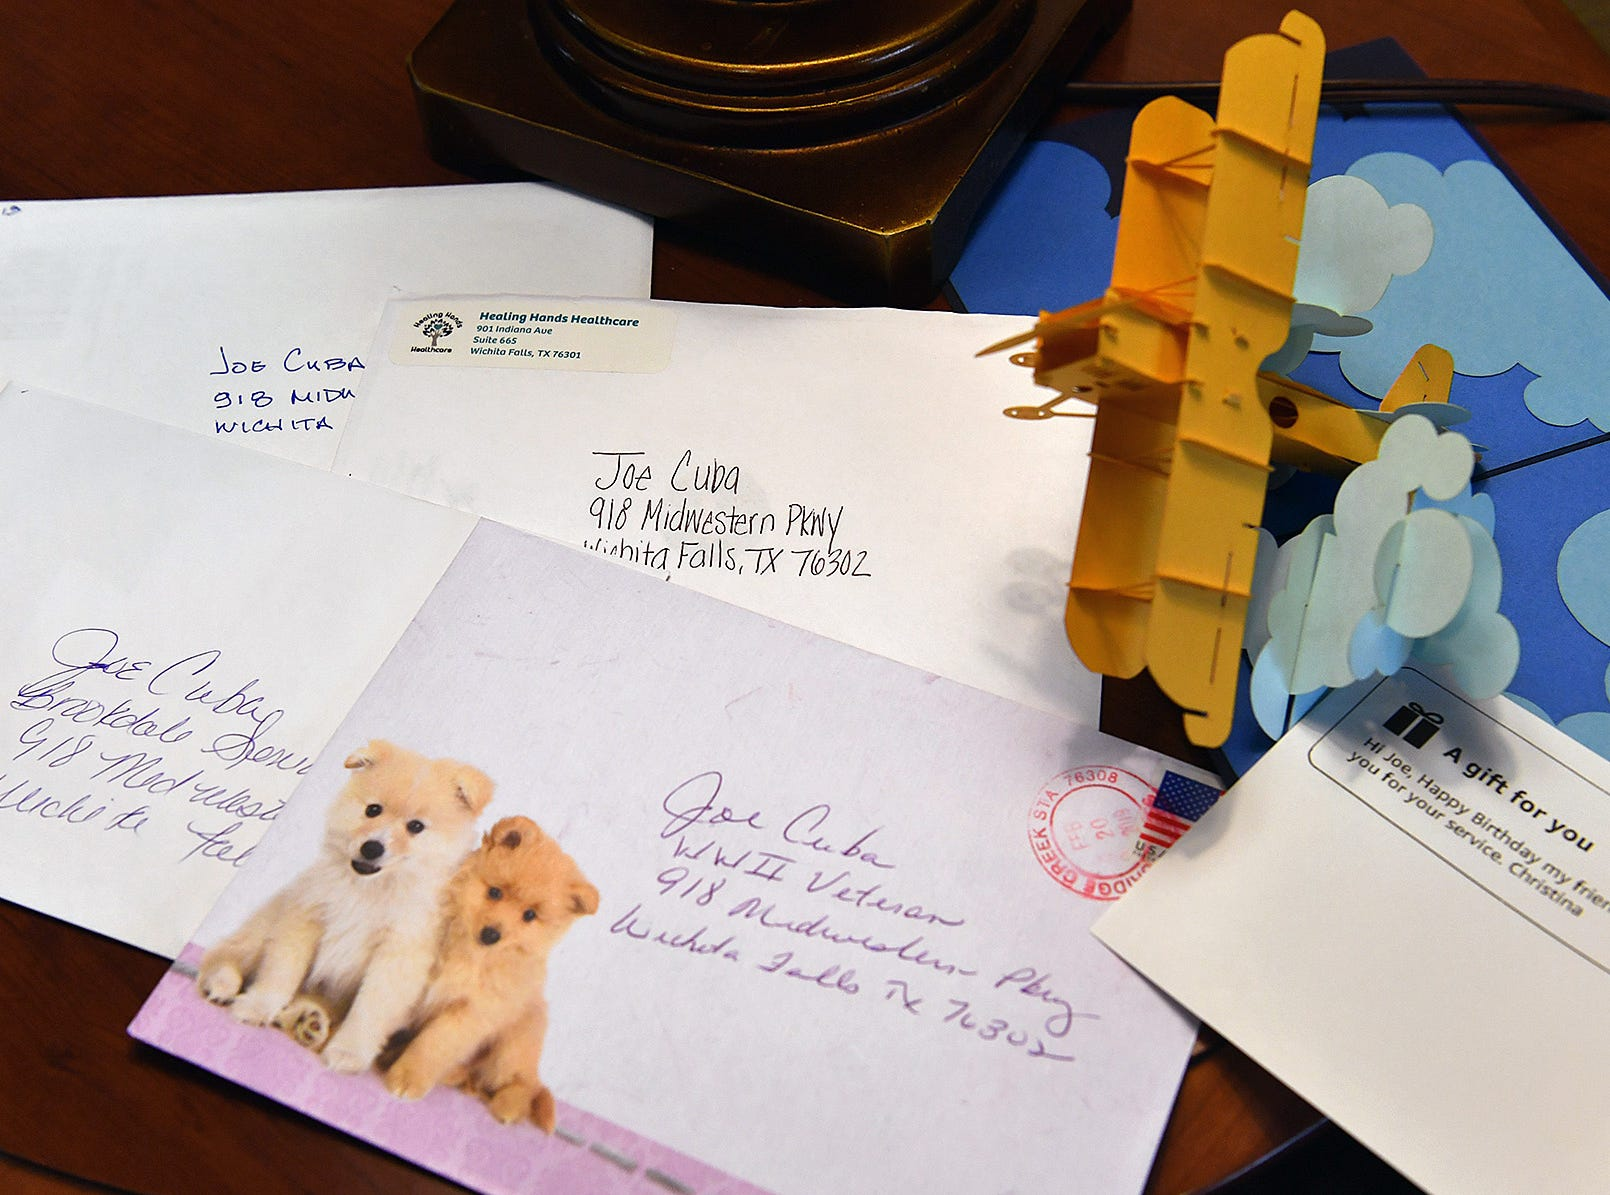 Birthday cards have begun arriving for World War II veteran Joe Cuba who will turn 100-years old on March 2. Cuba is hoping to receive 100 cards for his birthday.